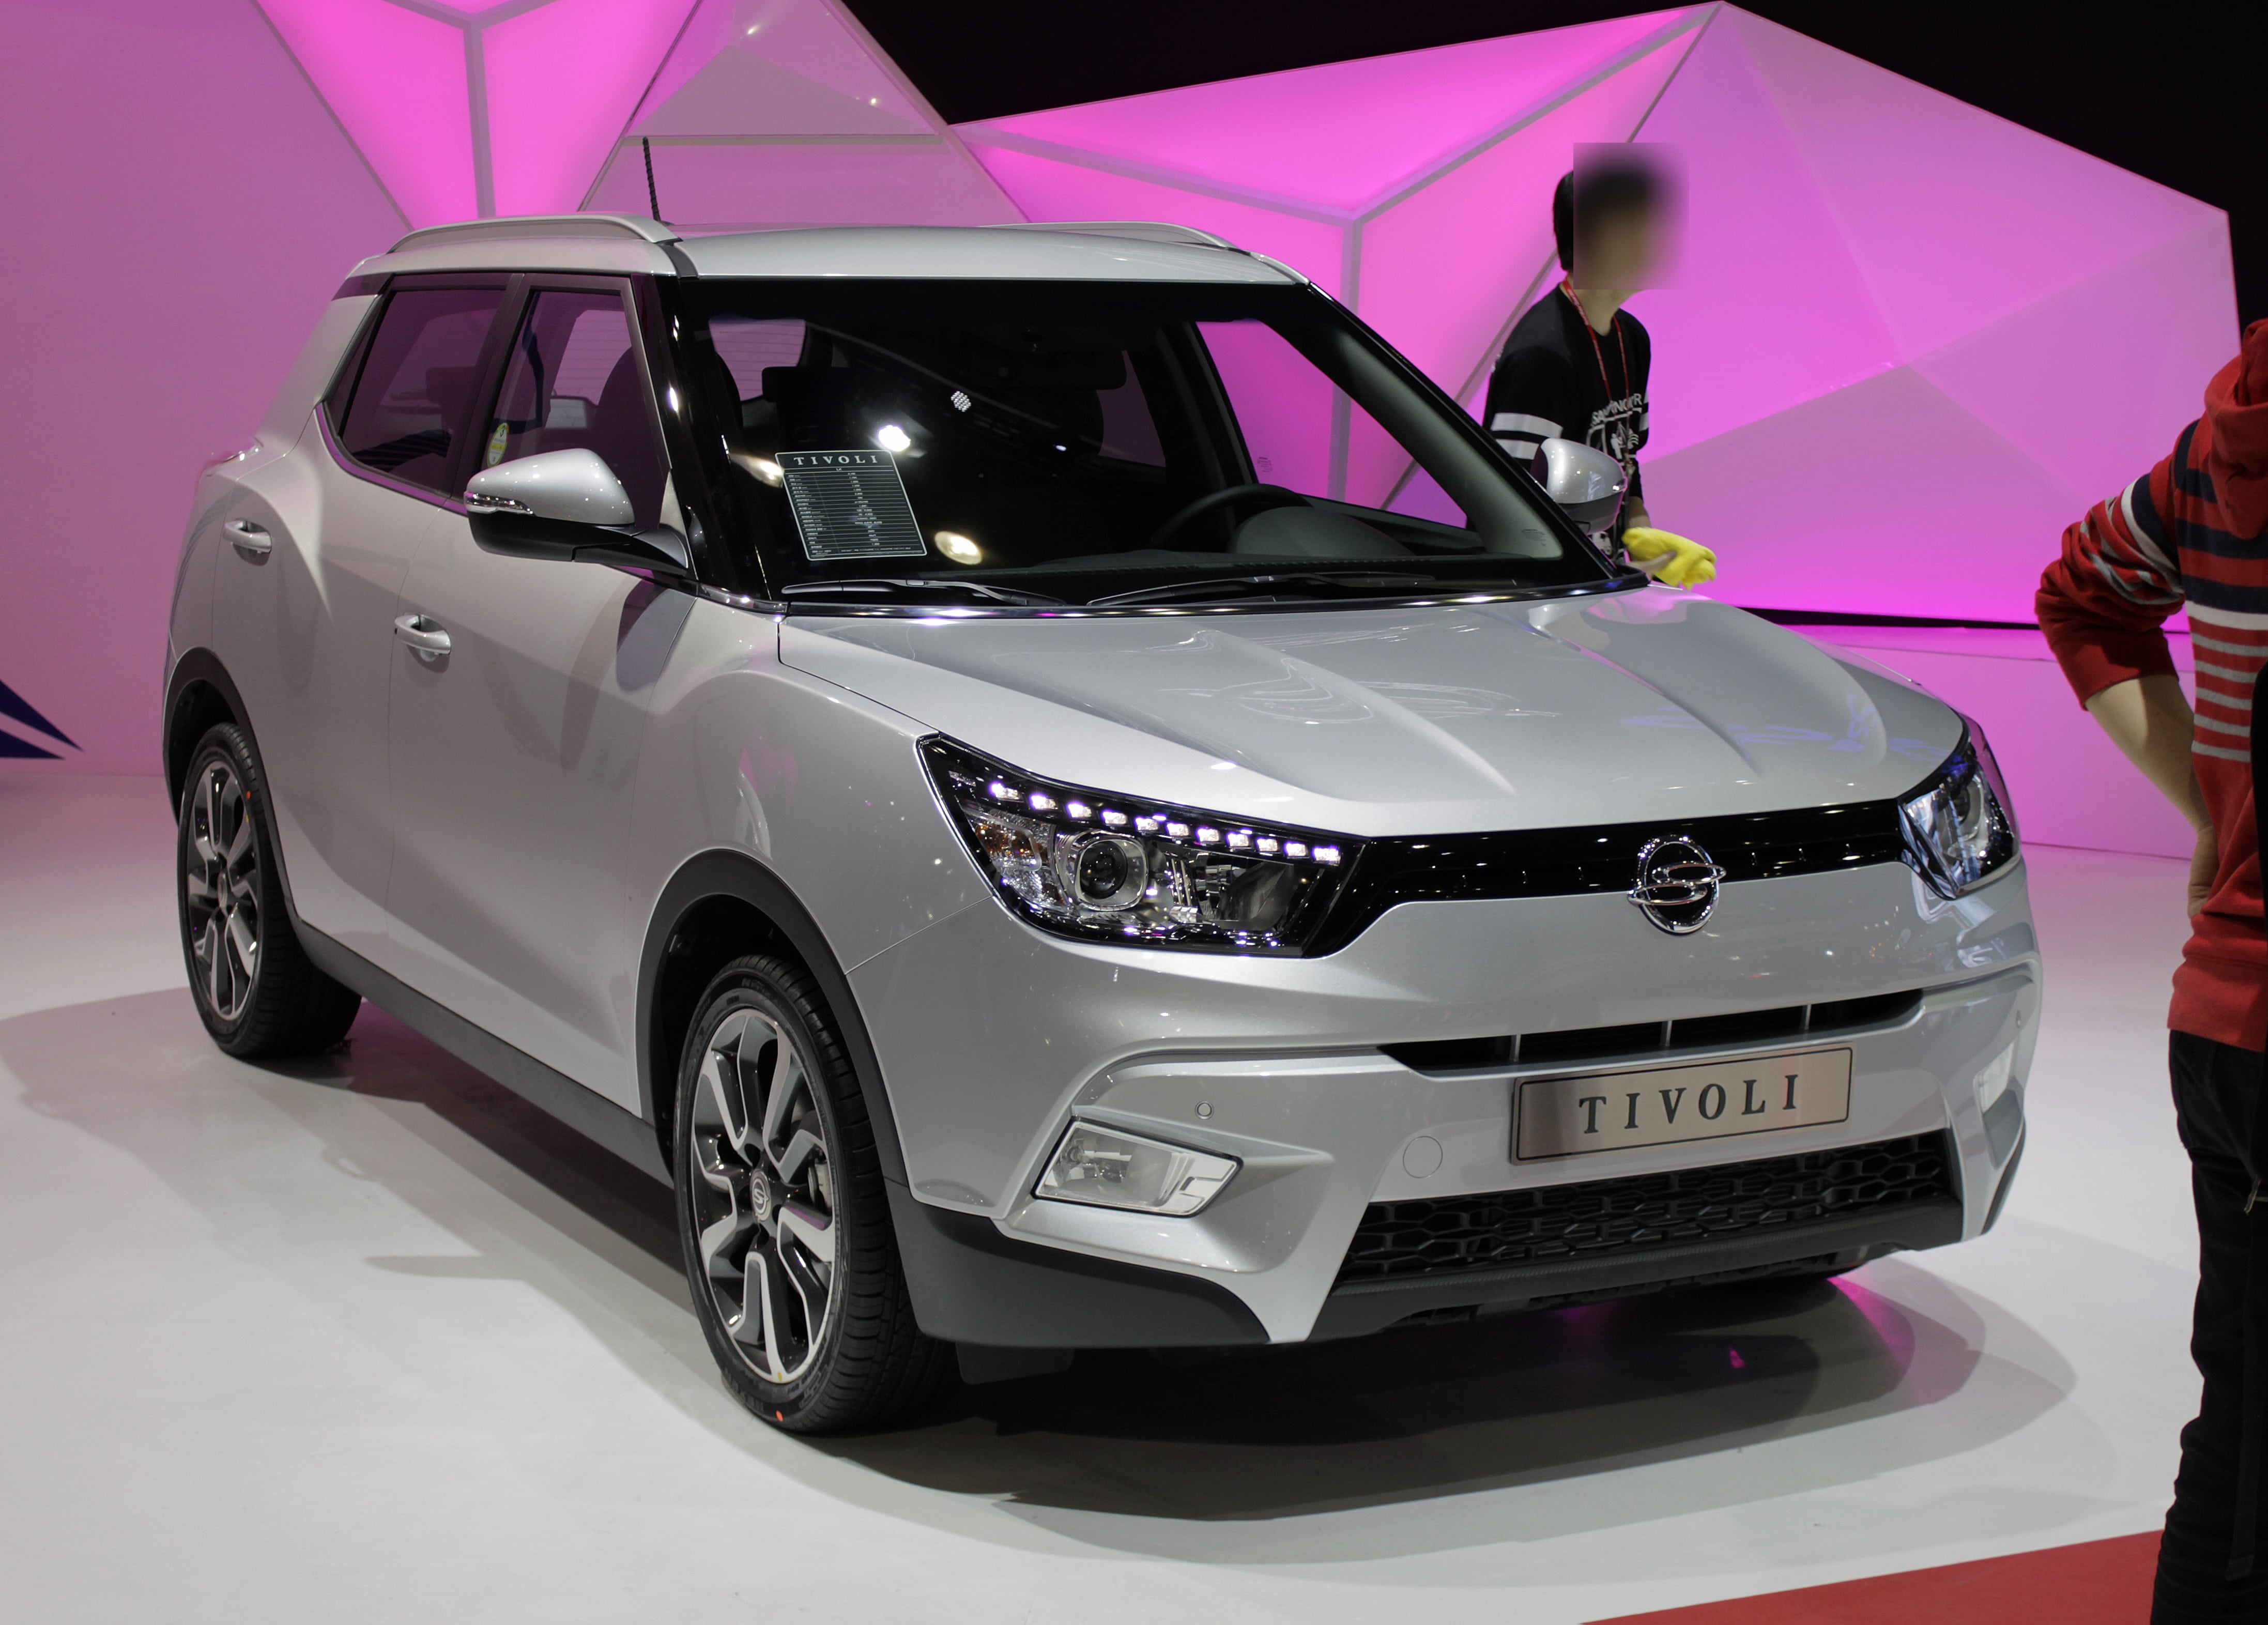 SsangYong Tivoli Wallpapers